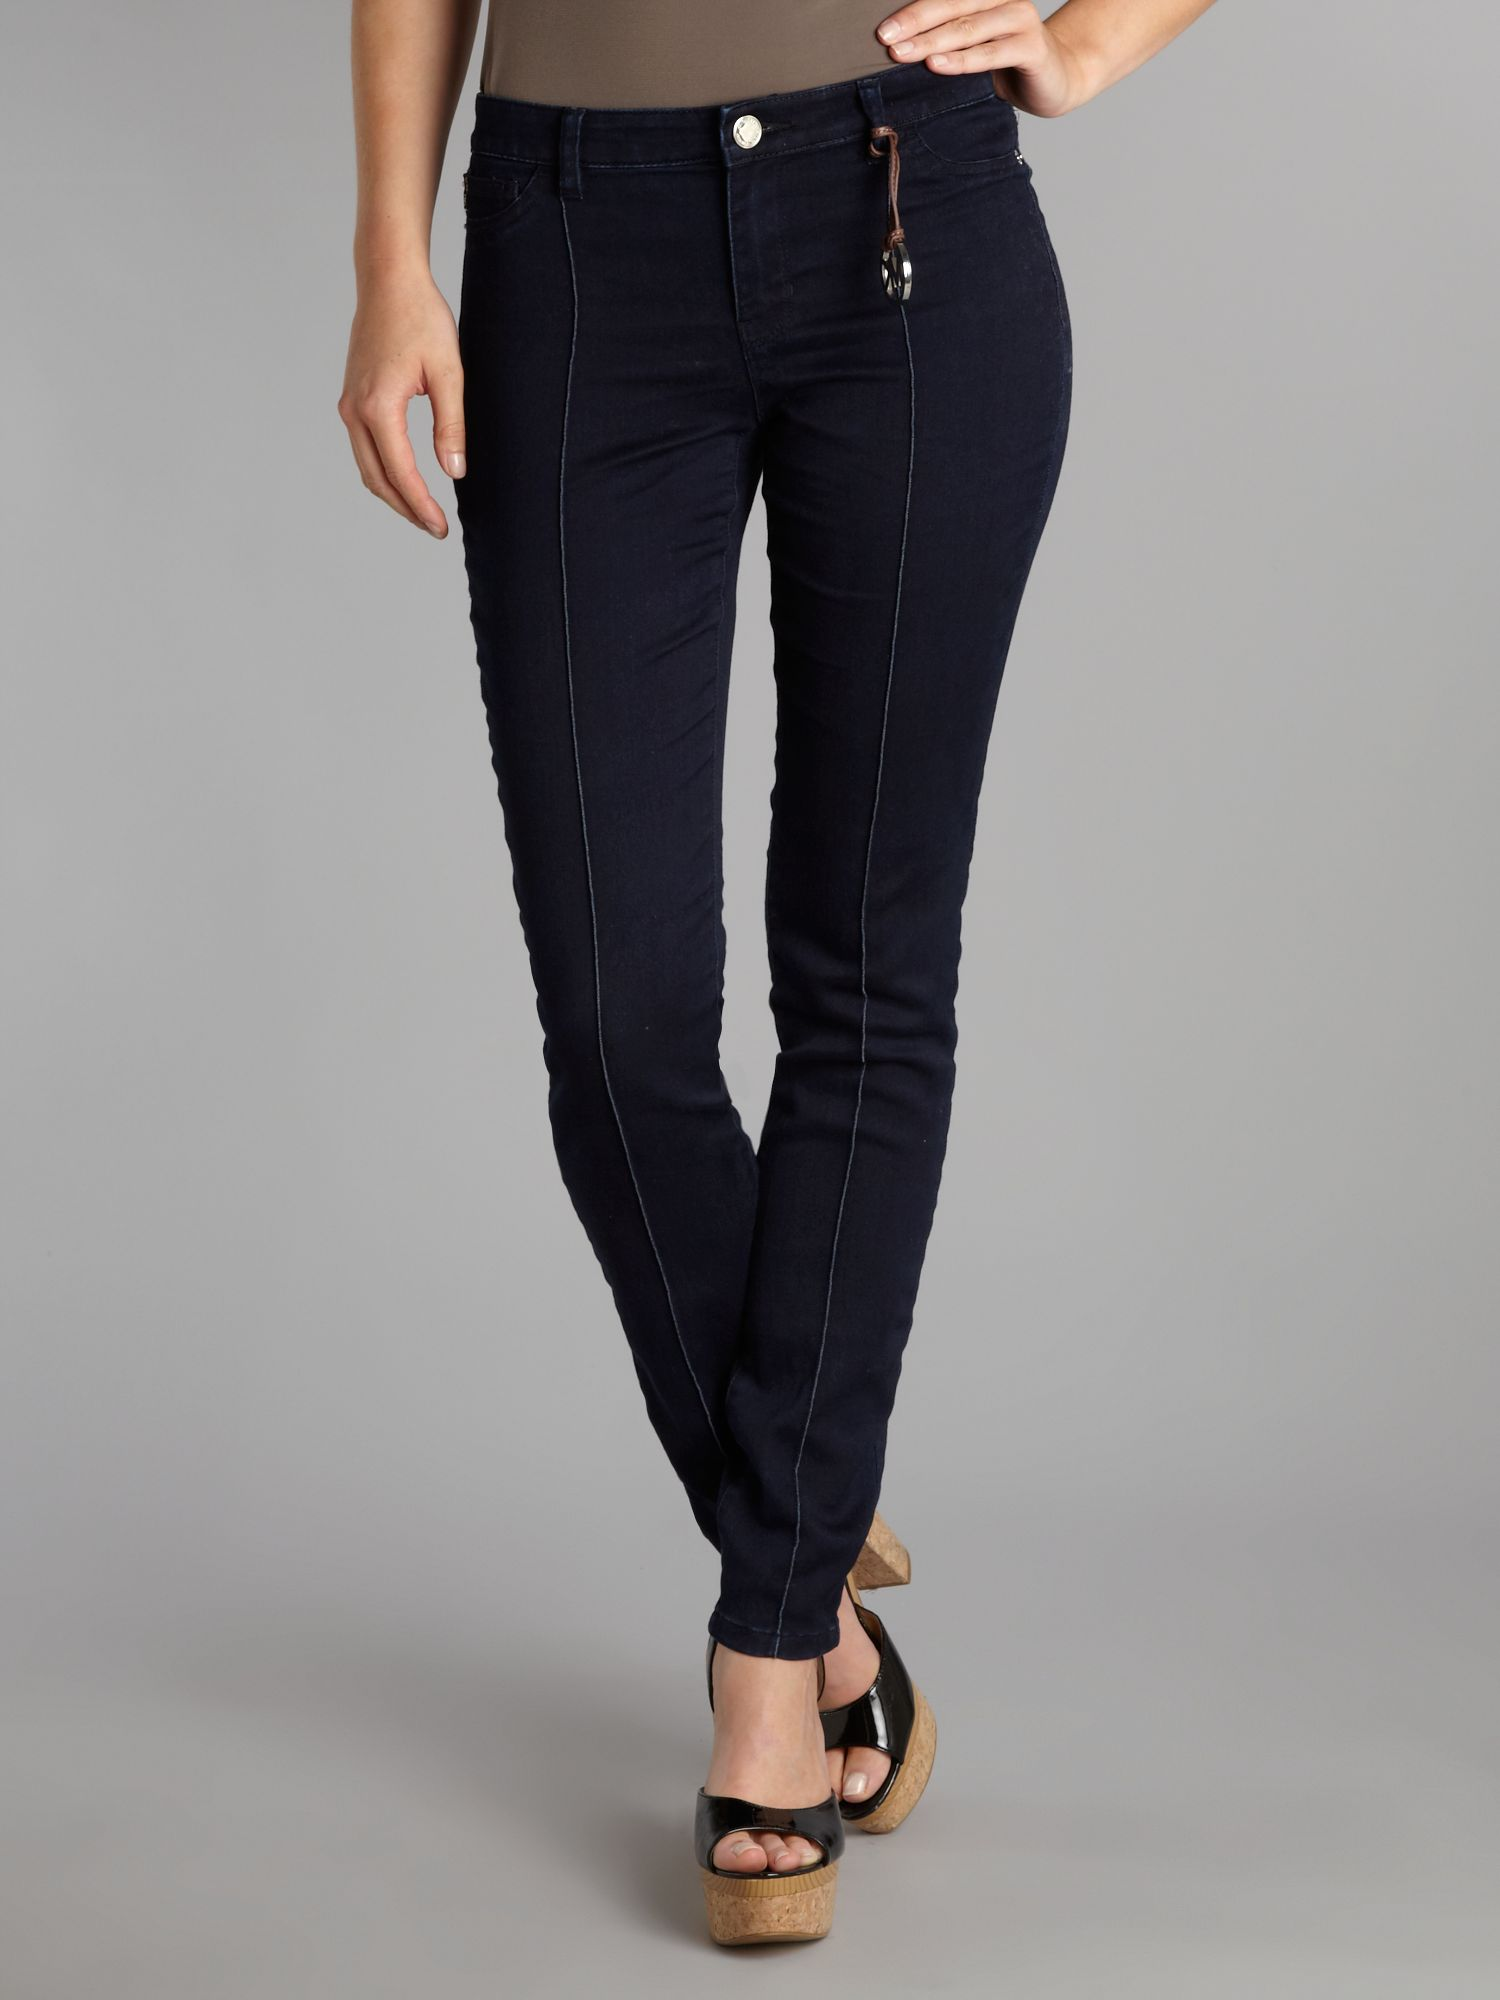 Jegging trousers